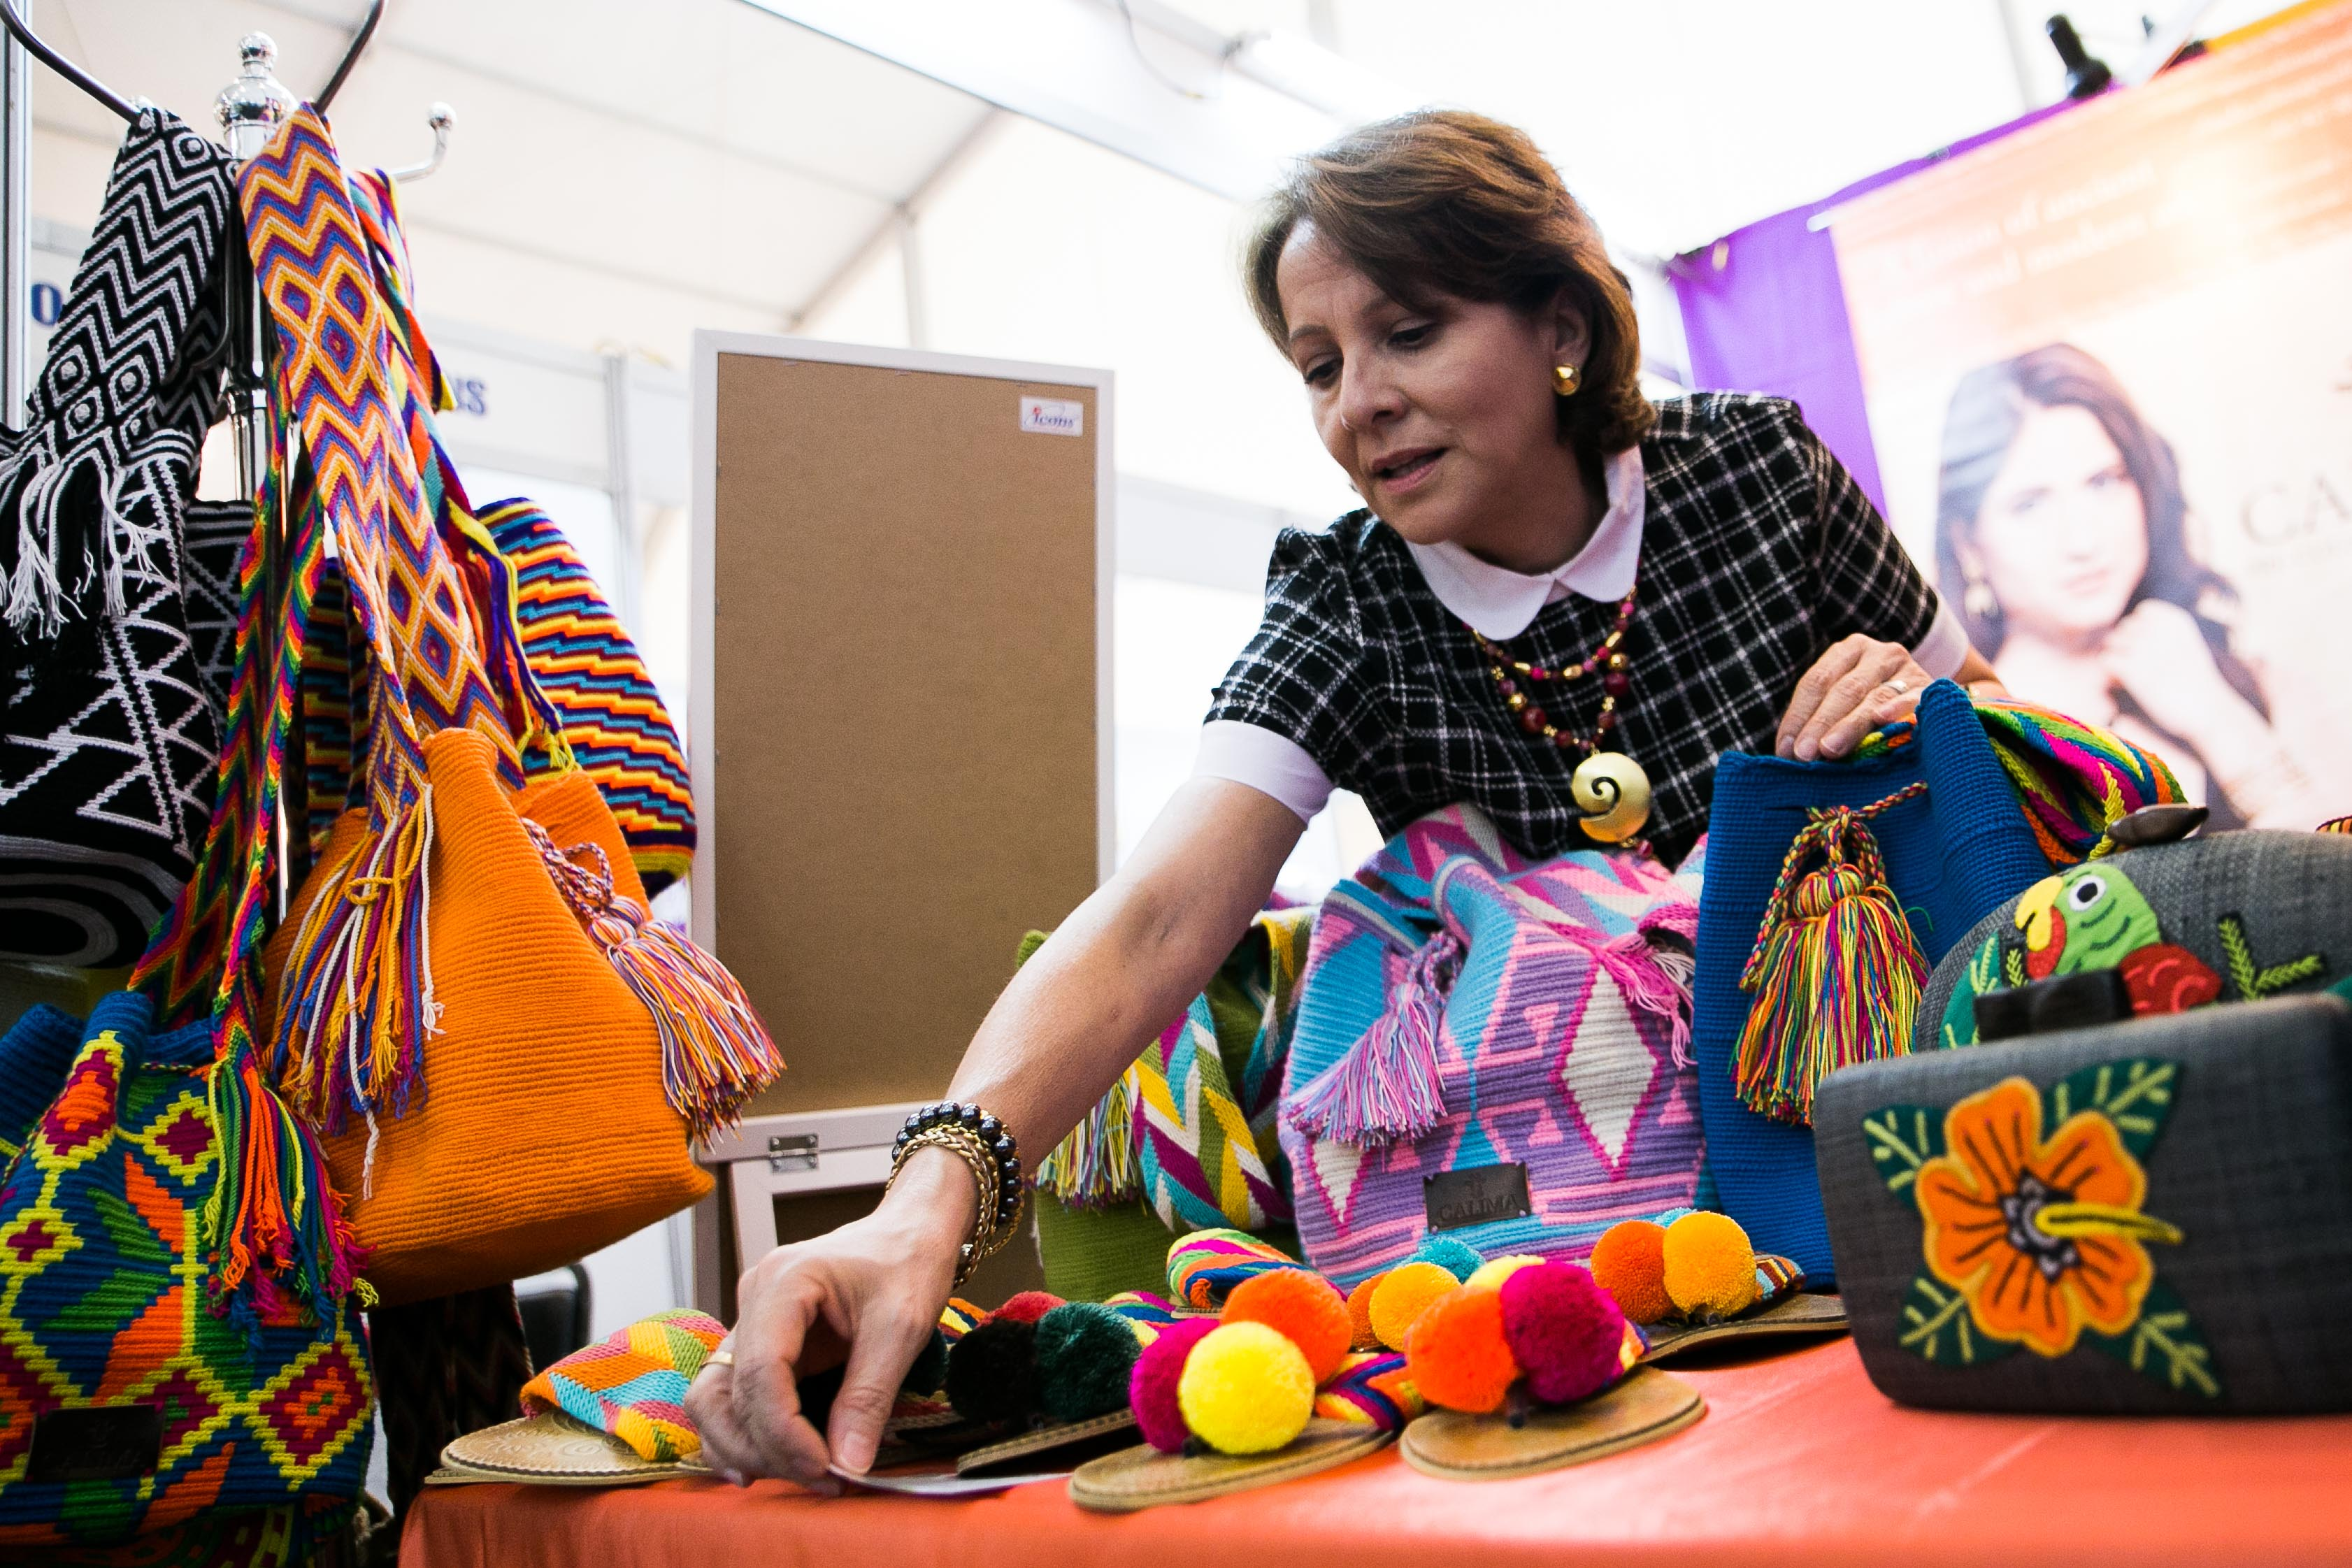 FROM CALIMA. Colombian Claudia Hernandez fixes her products at the APEC International Media Center. She sells sandals, bags, and purses made by the Wayuu tribe in Colombia, and jewelry inspired by Colombian designs. Photo by Pat Nabong/Rappler